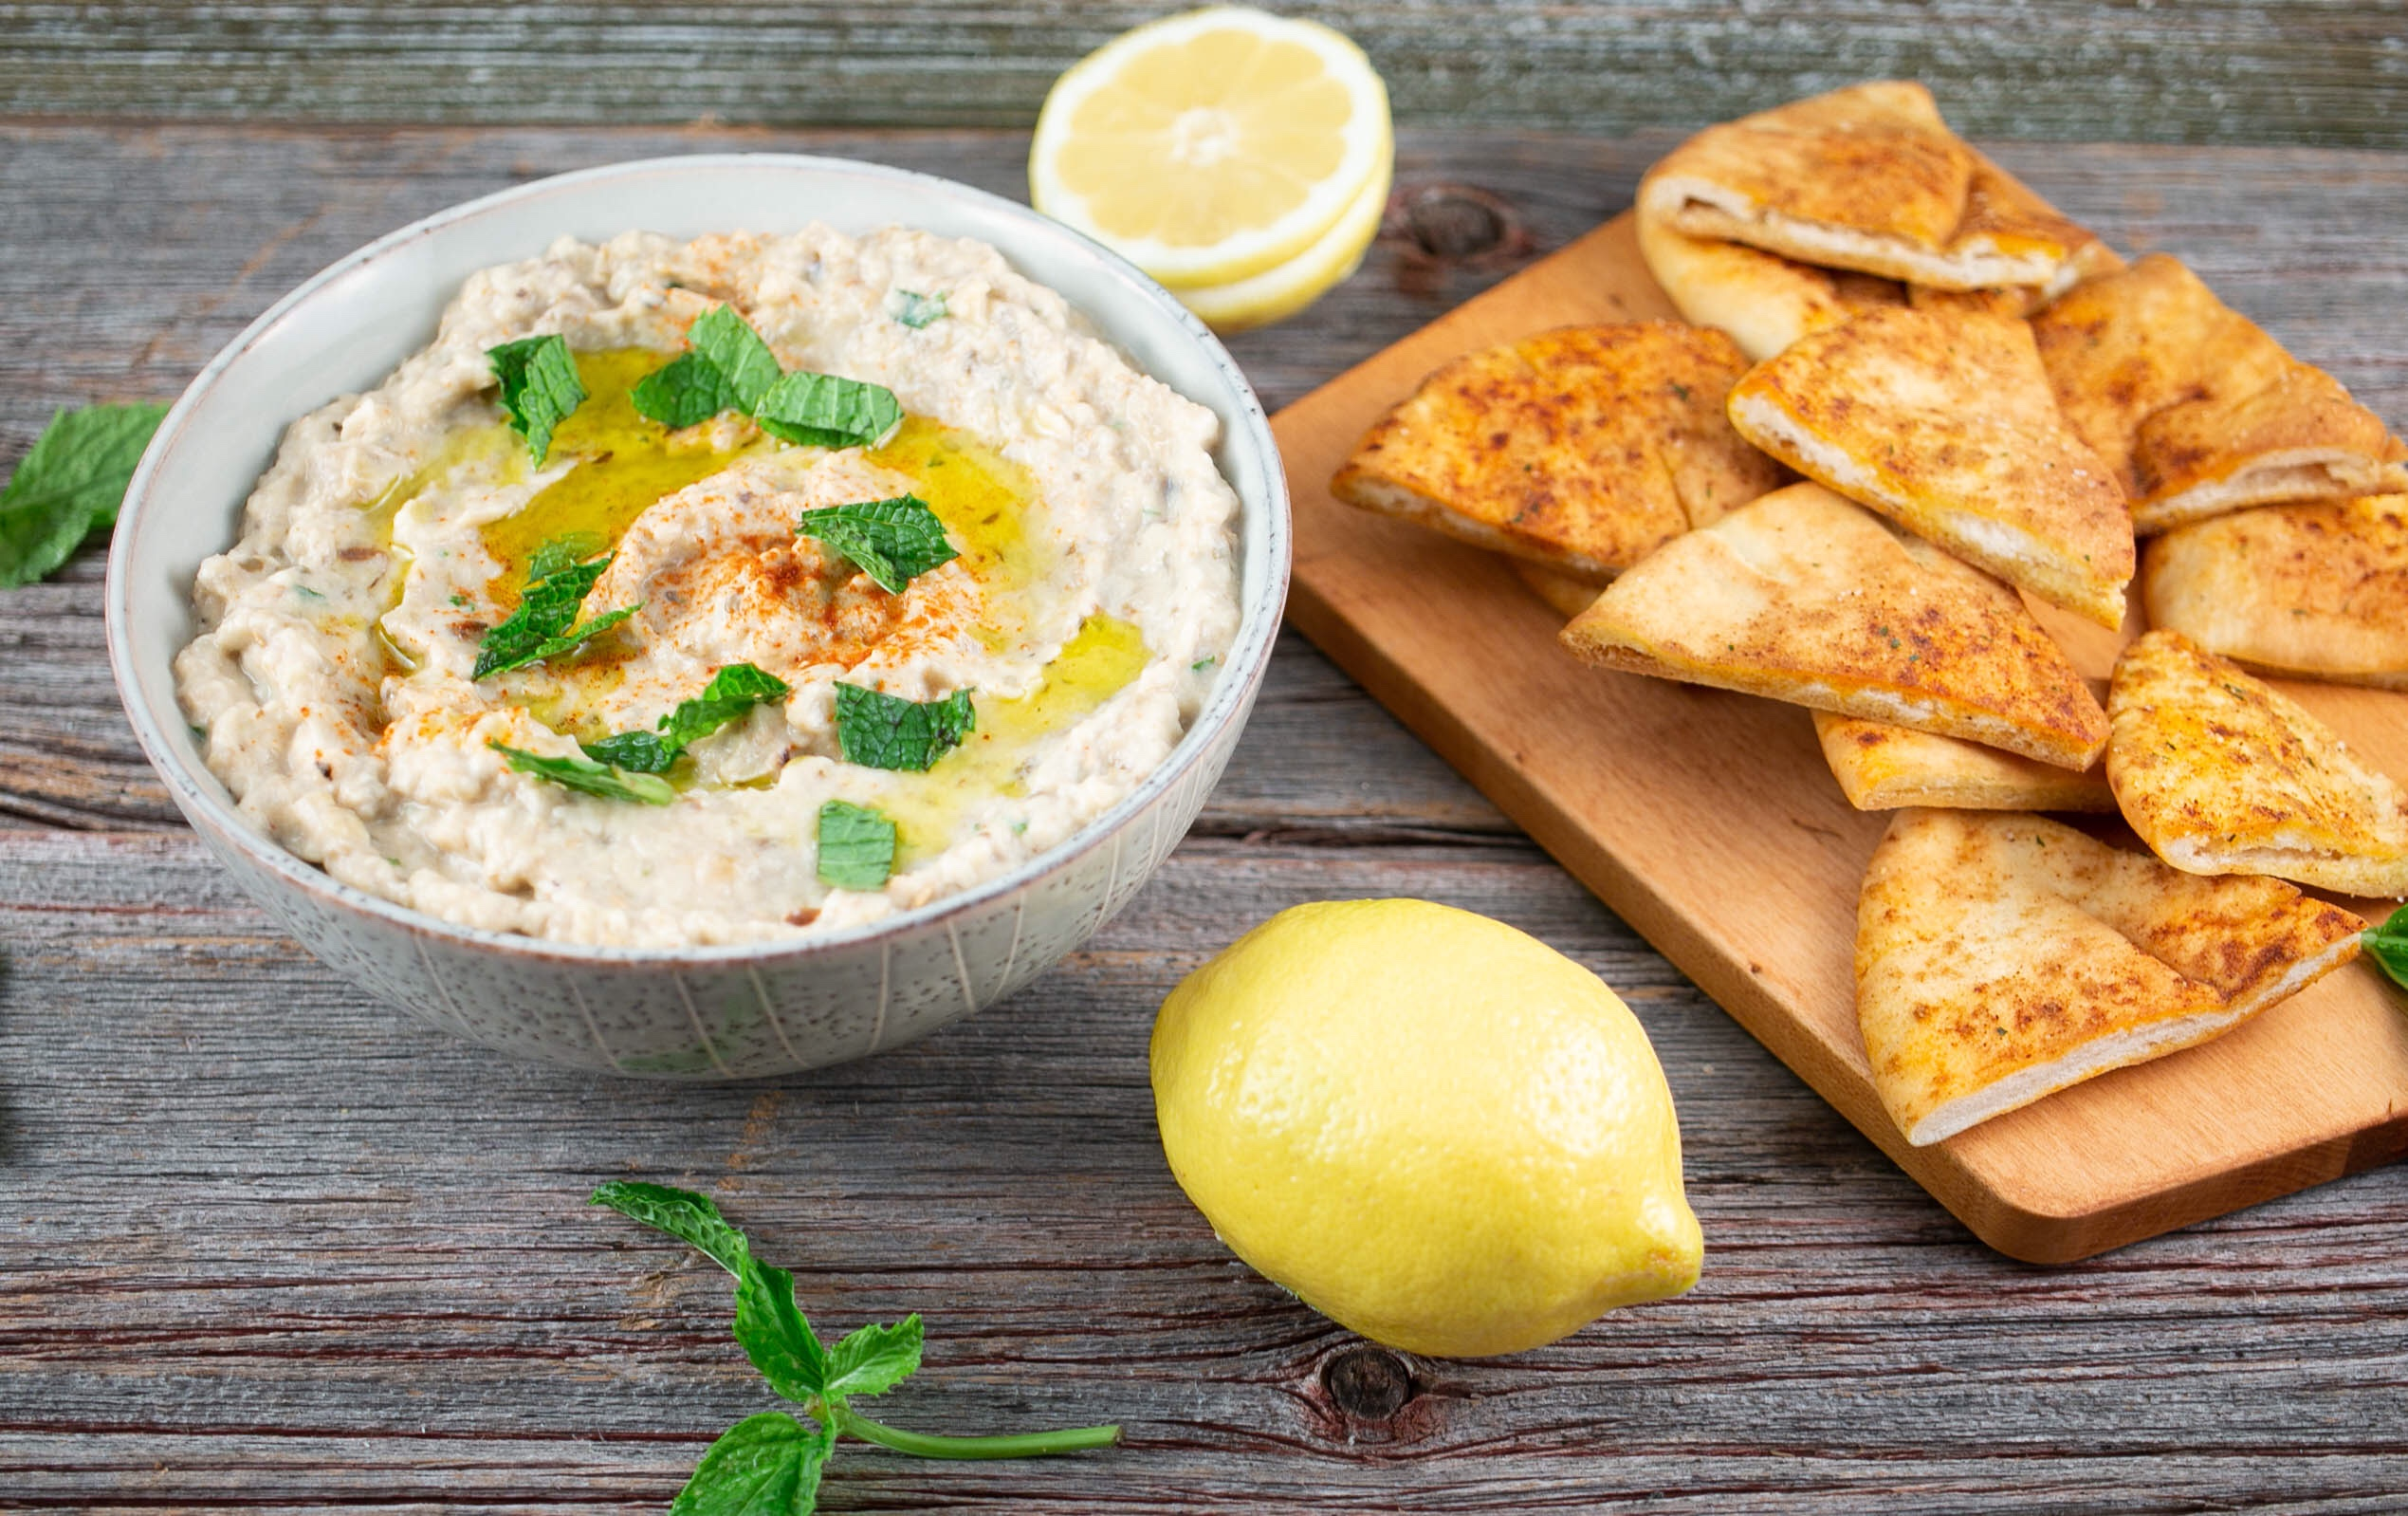 Spicy Eggplant Dip with Homemade Pita Chips